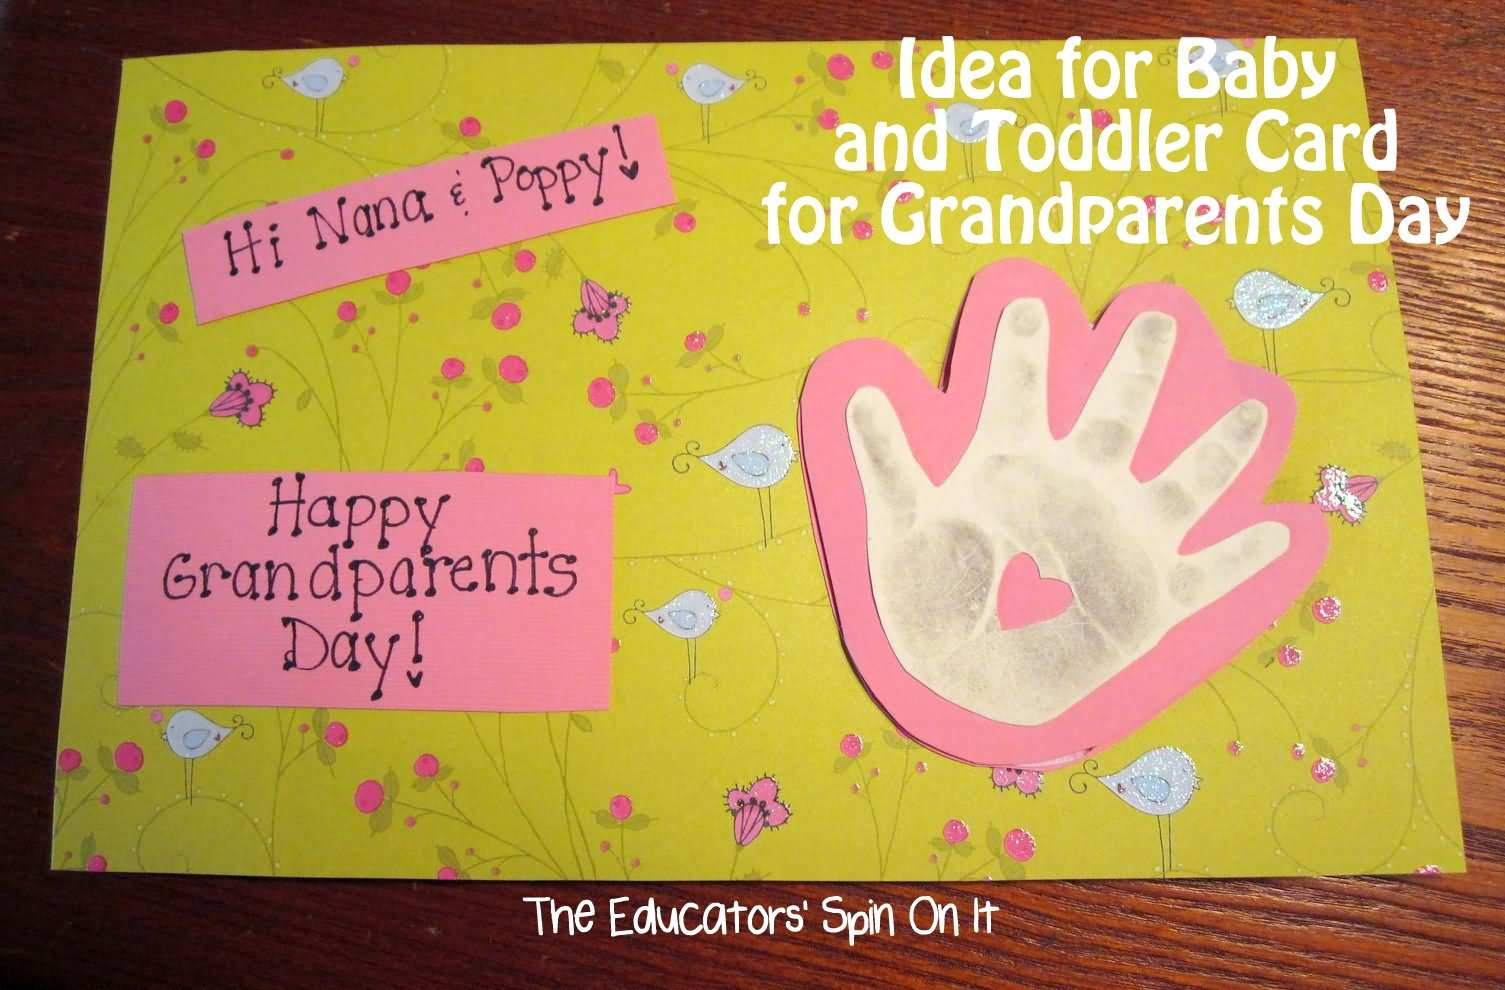 Birthday Cards For Grandma Ideas 95 Birthday Card Ideas For Grandmas Homemade Birthday Cards For